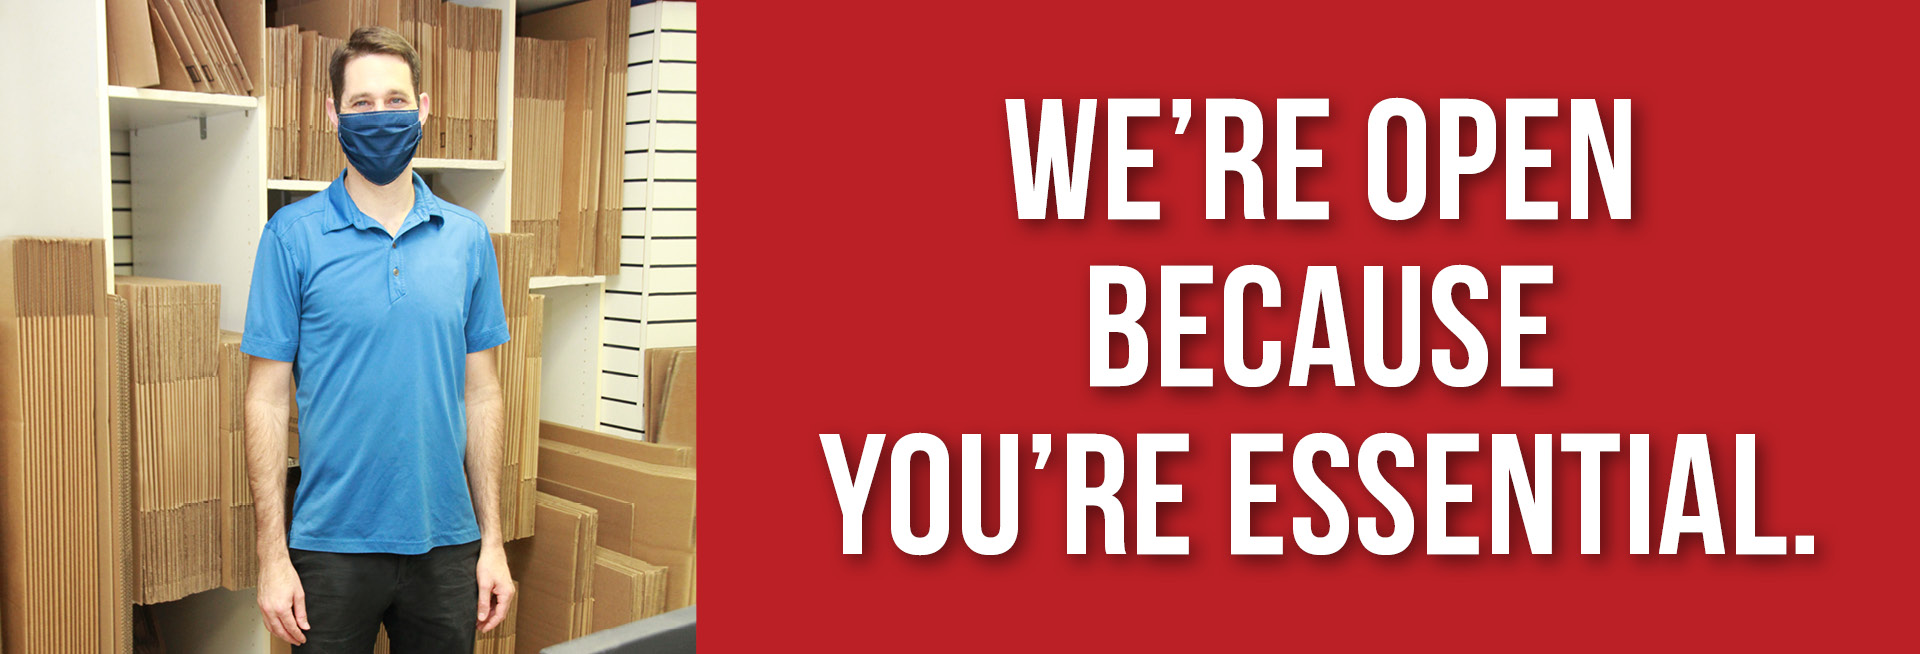 We Are Open Because You Are Essential